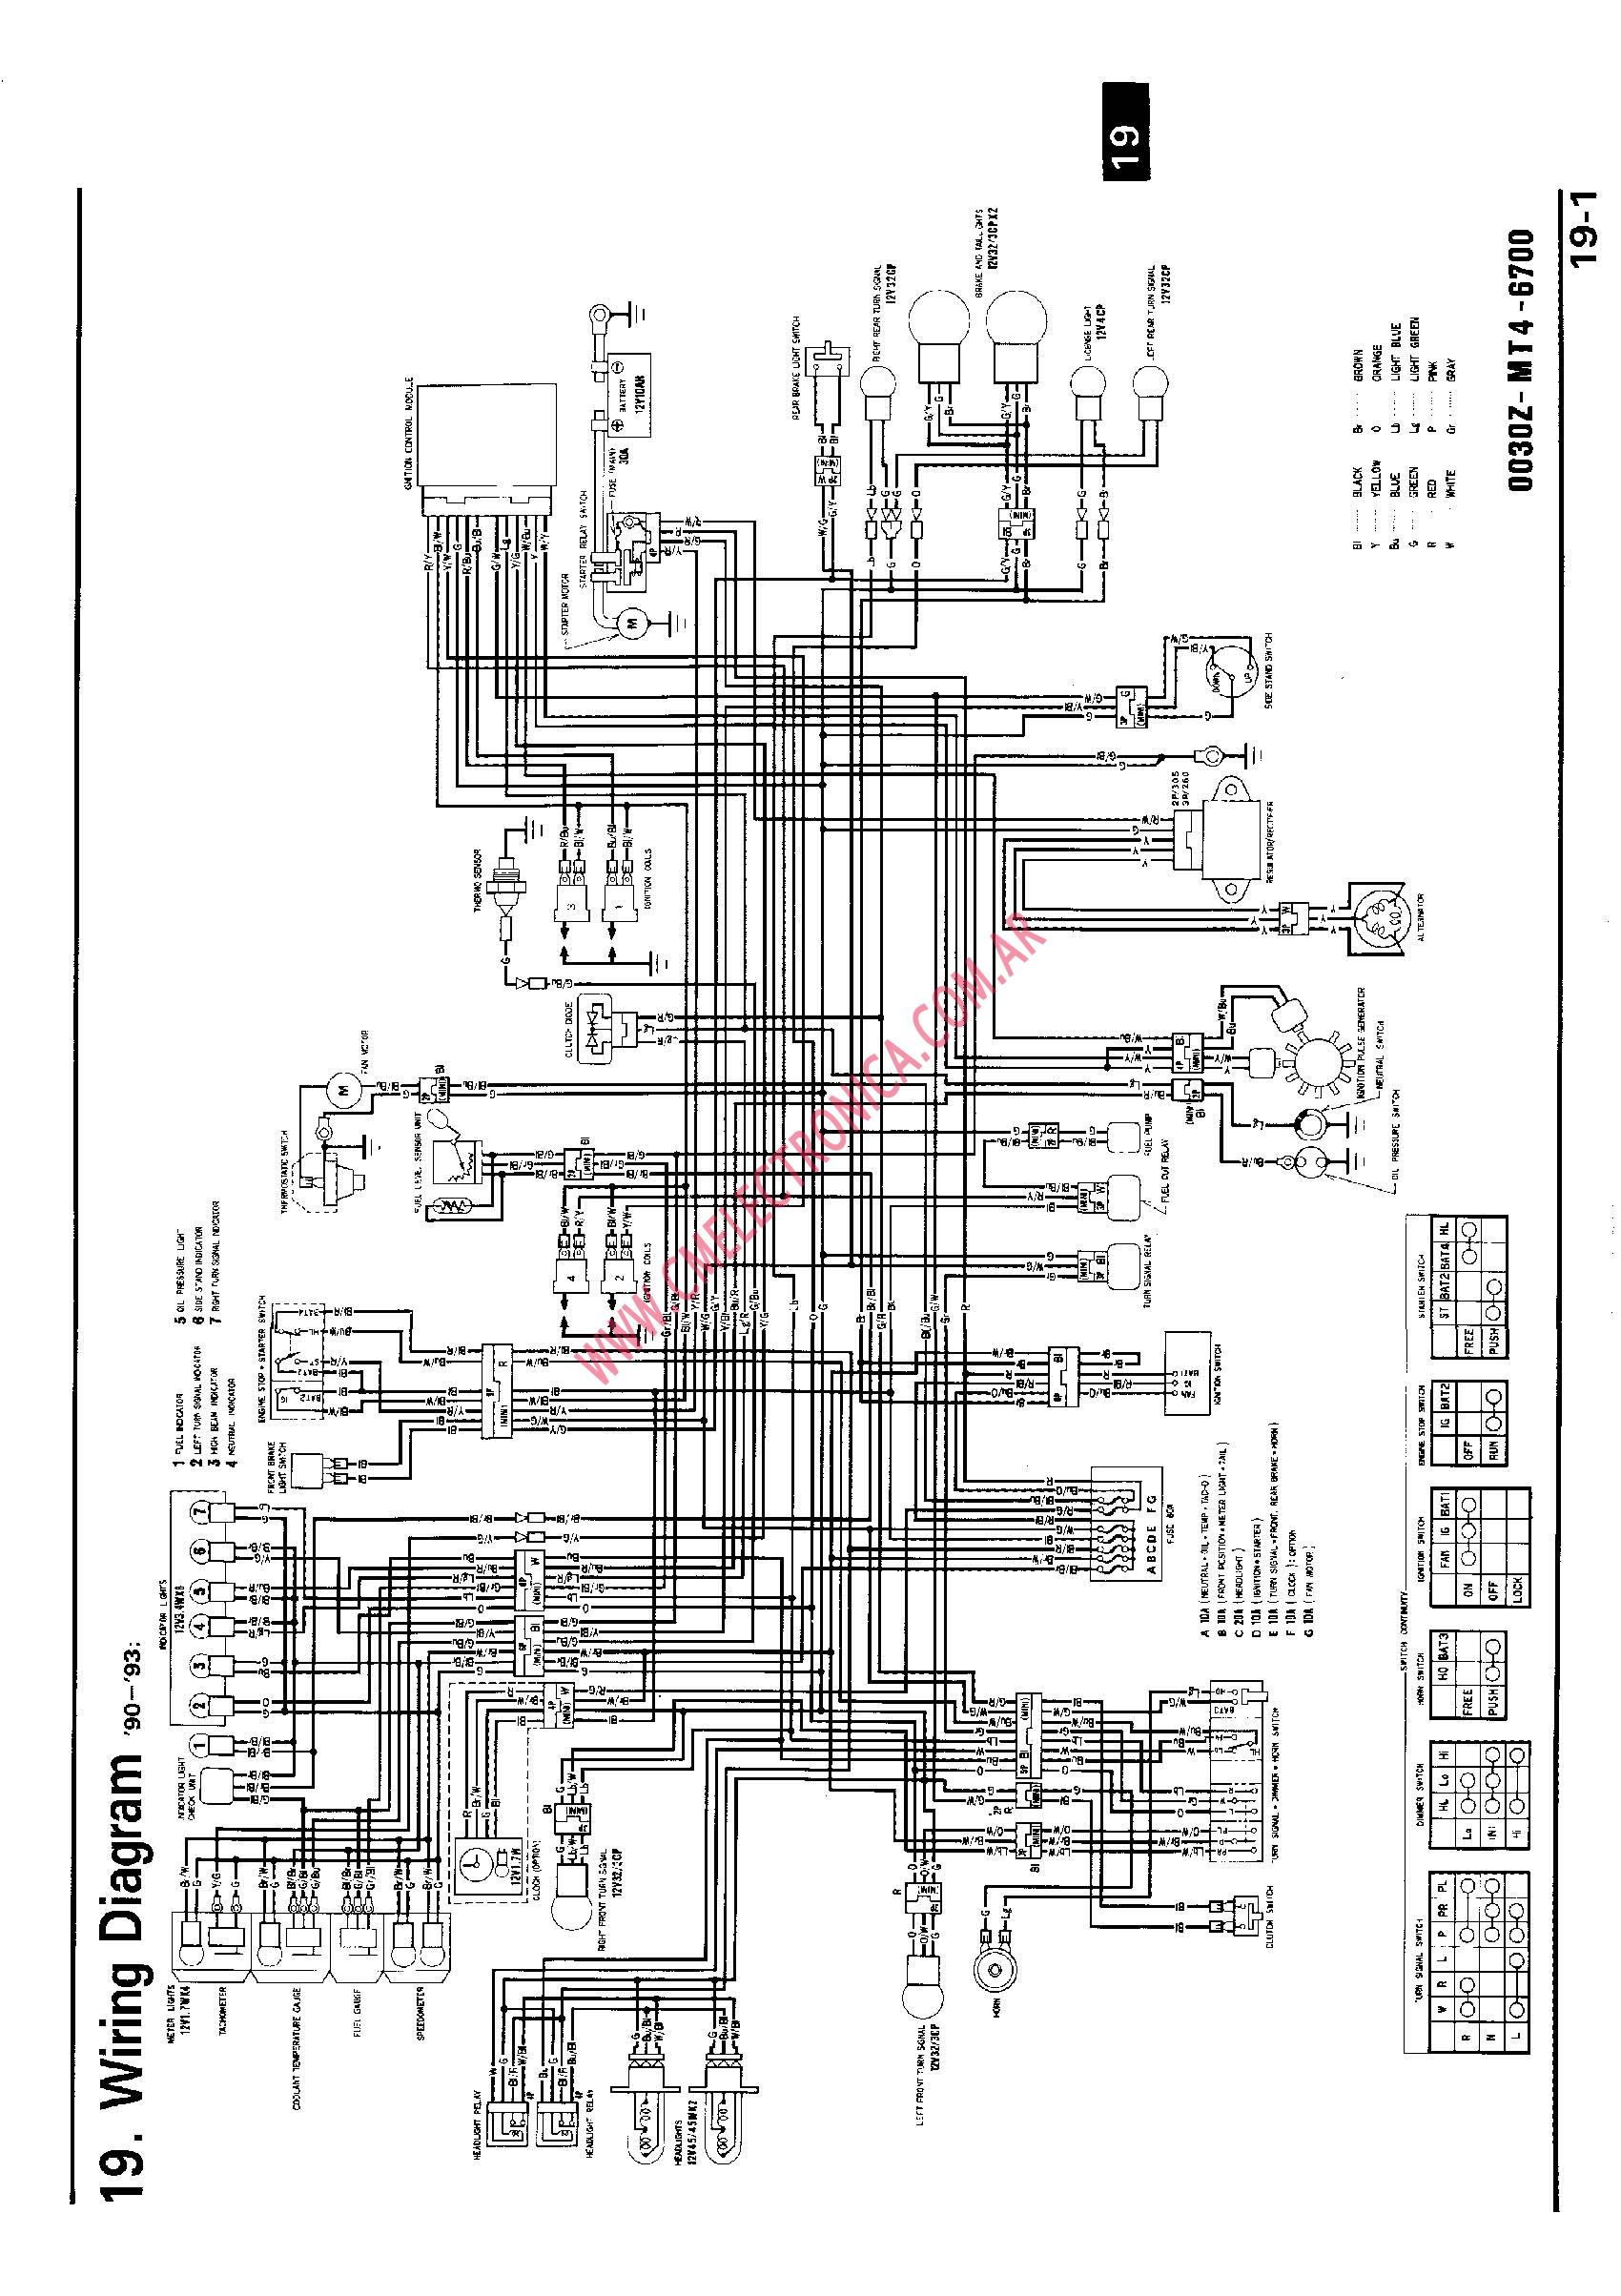 2006 Honda Cbr600rr Wiring Diagram moreover 91 Jeep Cherokee Engine Diagram also Meyer E 47 Wiring Schematic furthermore Honda Passport Fuse Box Diagram moreover Transmission Bolt Part Number 1675060. on honda crx parts diagram